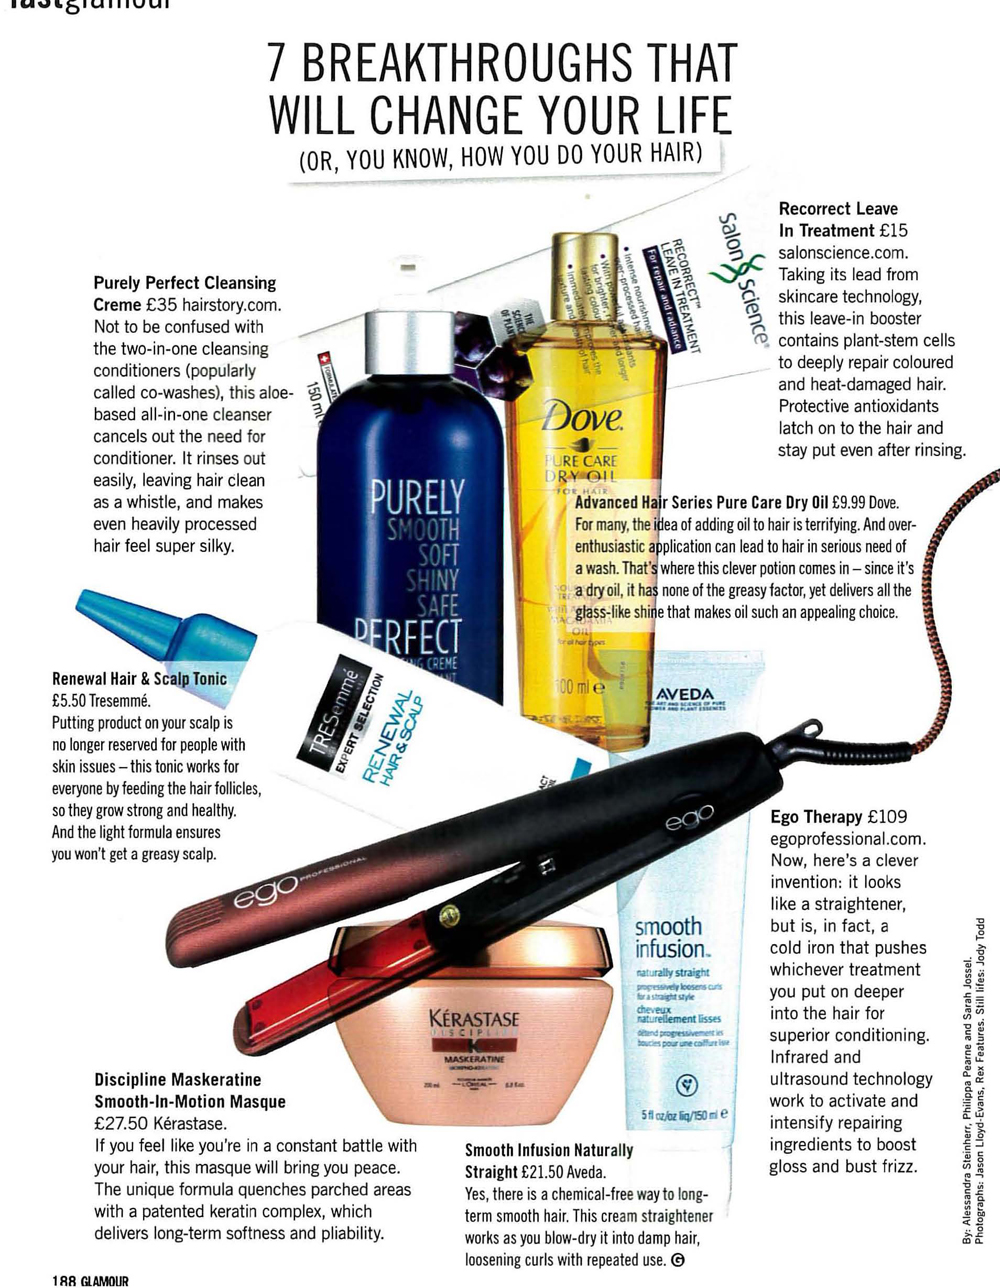 Check out Glamour Magazines hair handbook with expert quotes on how to keep your hair ontrend, from Ollie Blackaby Artistic Ambassador at Headmasters_Page_4